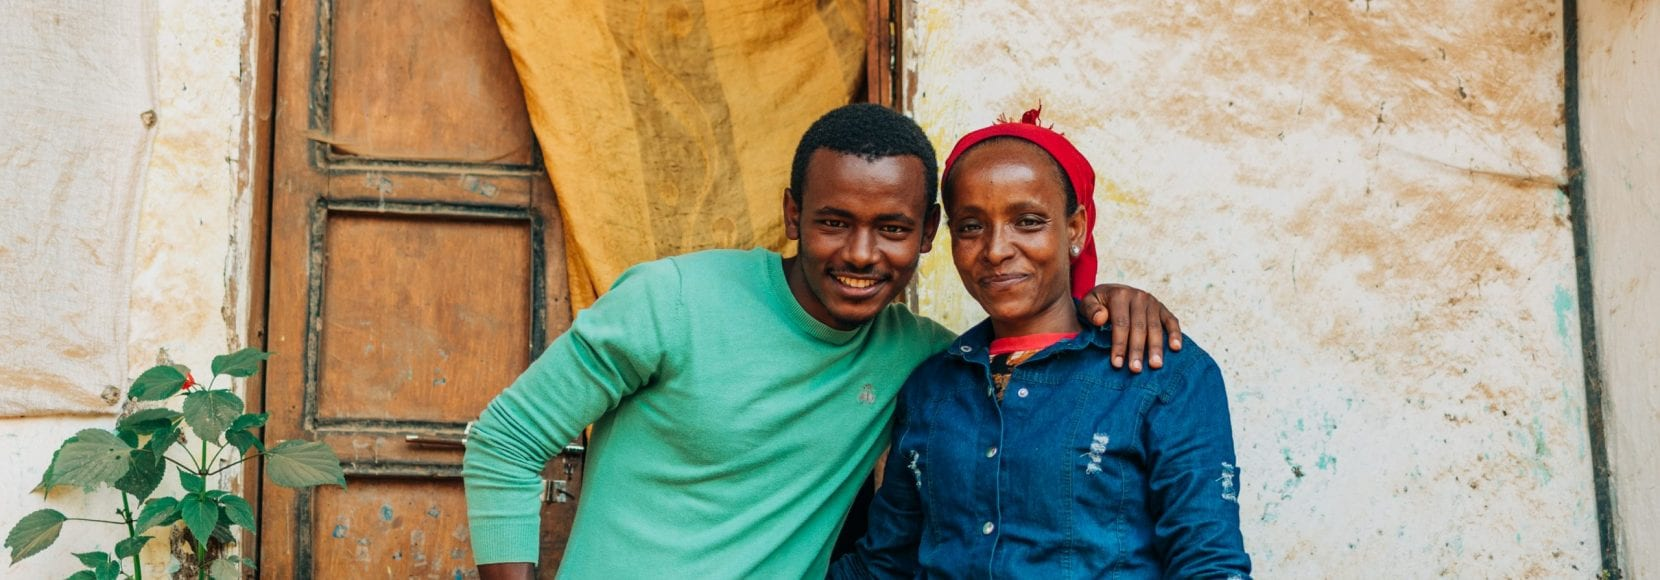 The impact of coffee has transformed what life looks like for Lubaba and her son smiling in front of their home